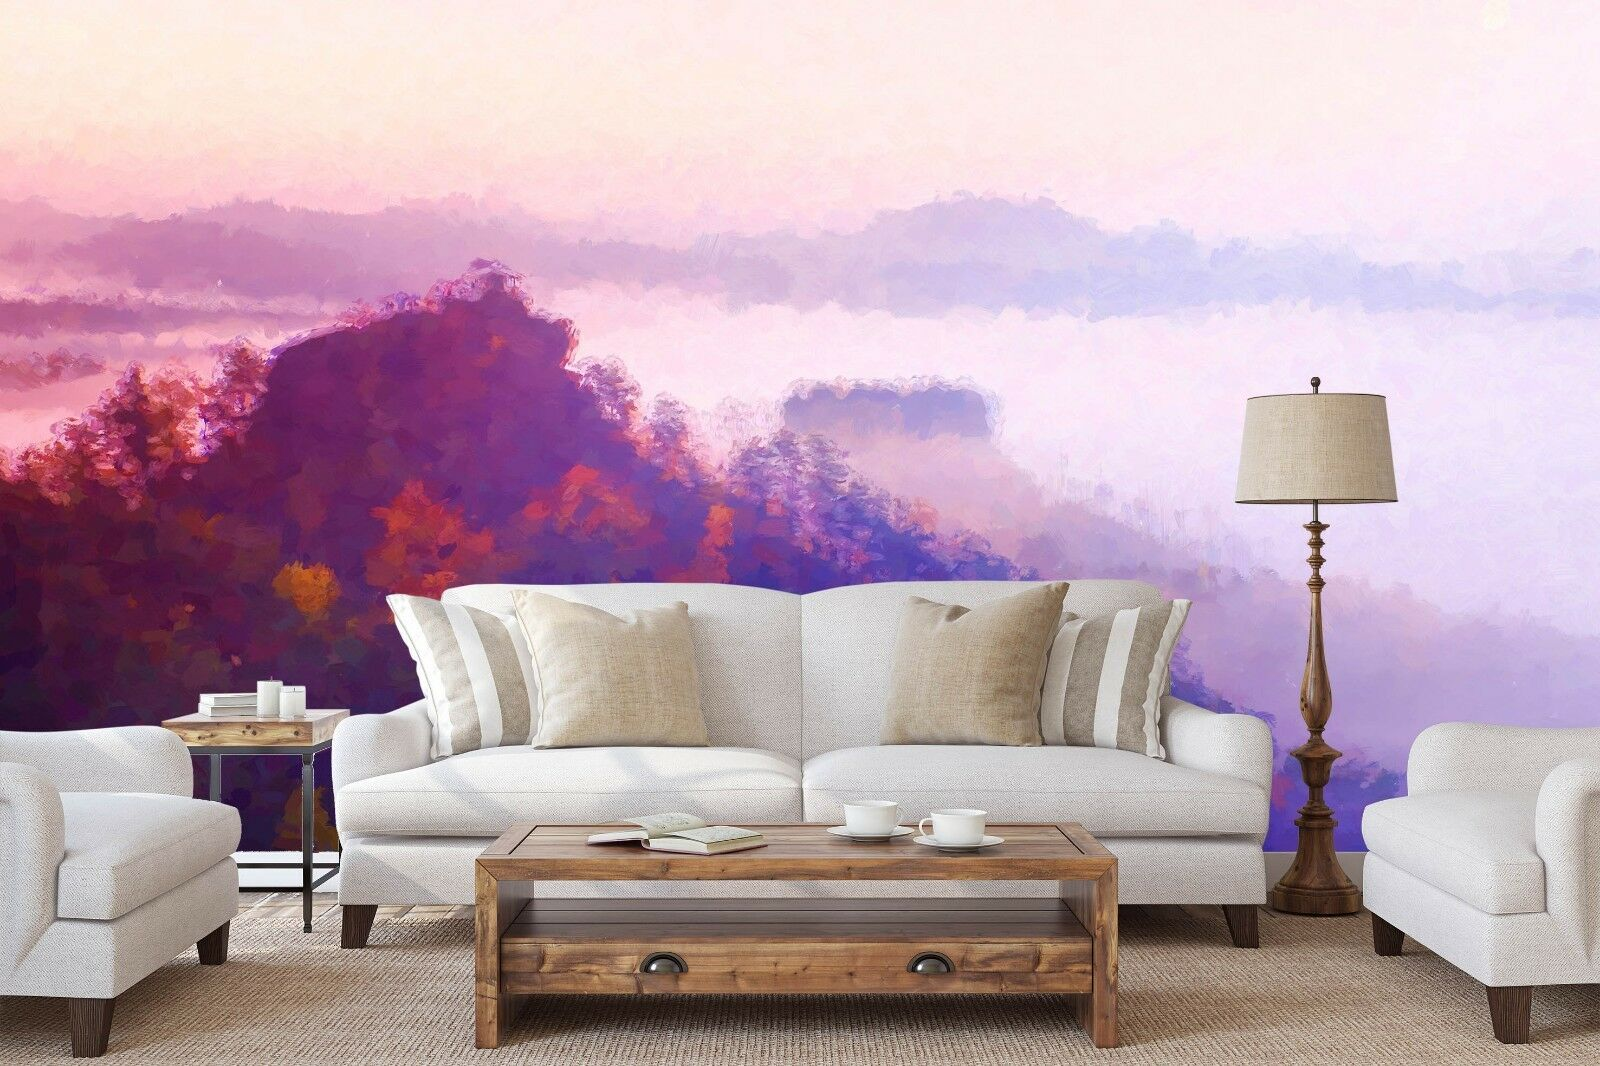 3D Mountain 834 Wall Paper Print Wall Decal Deco Indoor Wall Murals US Summer